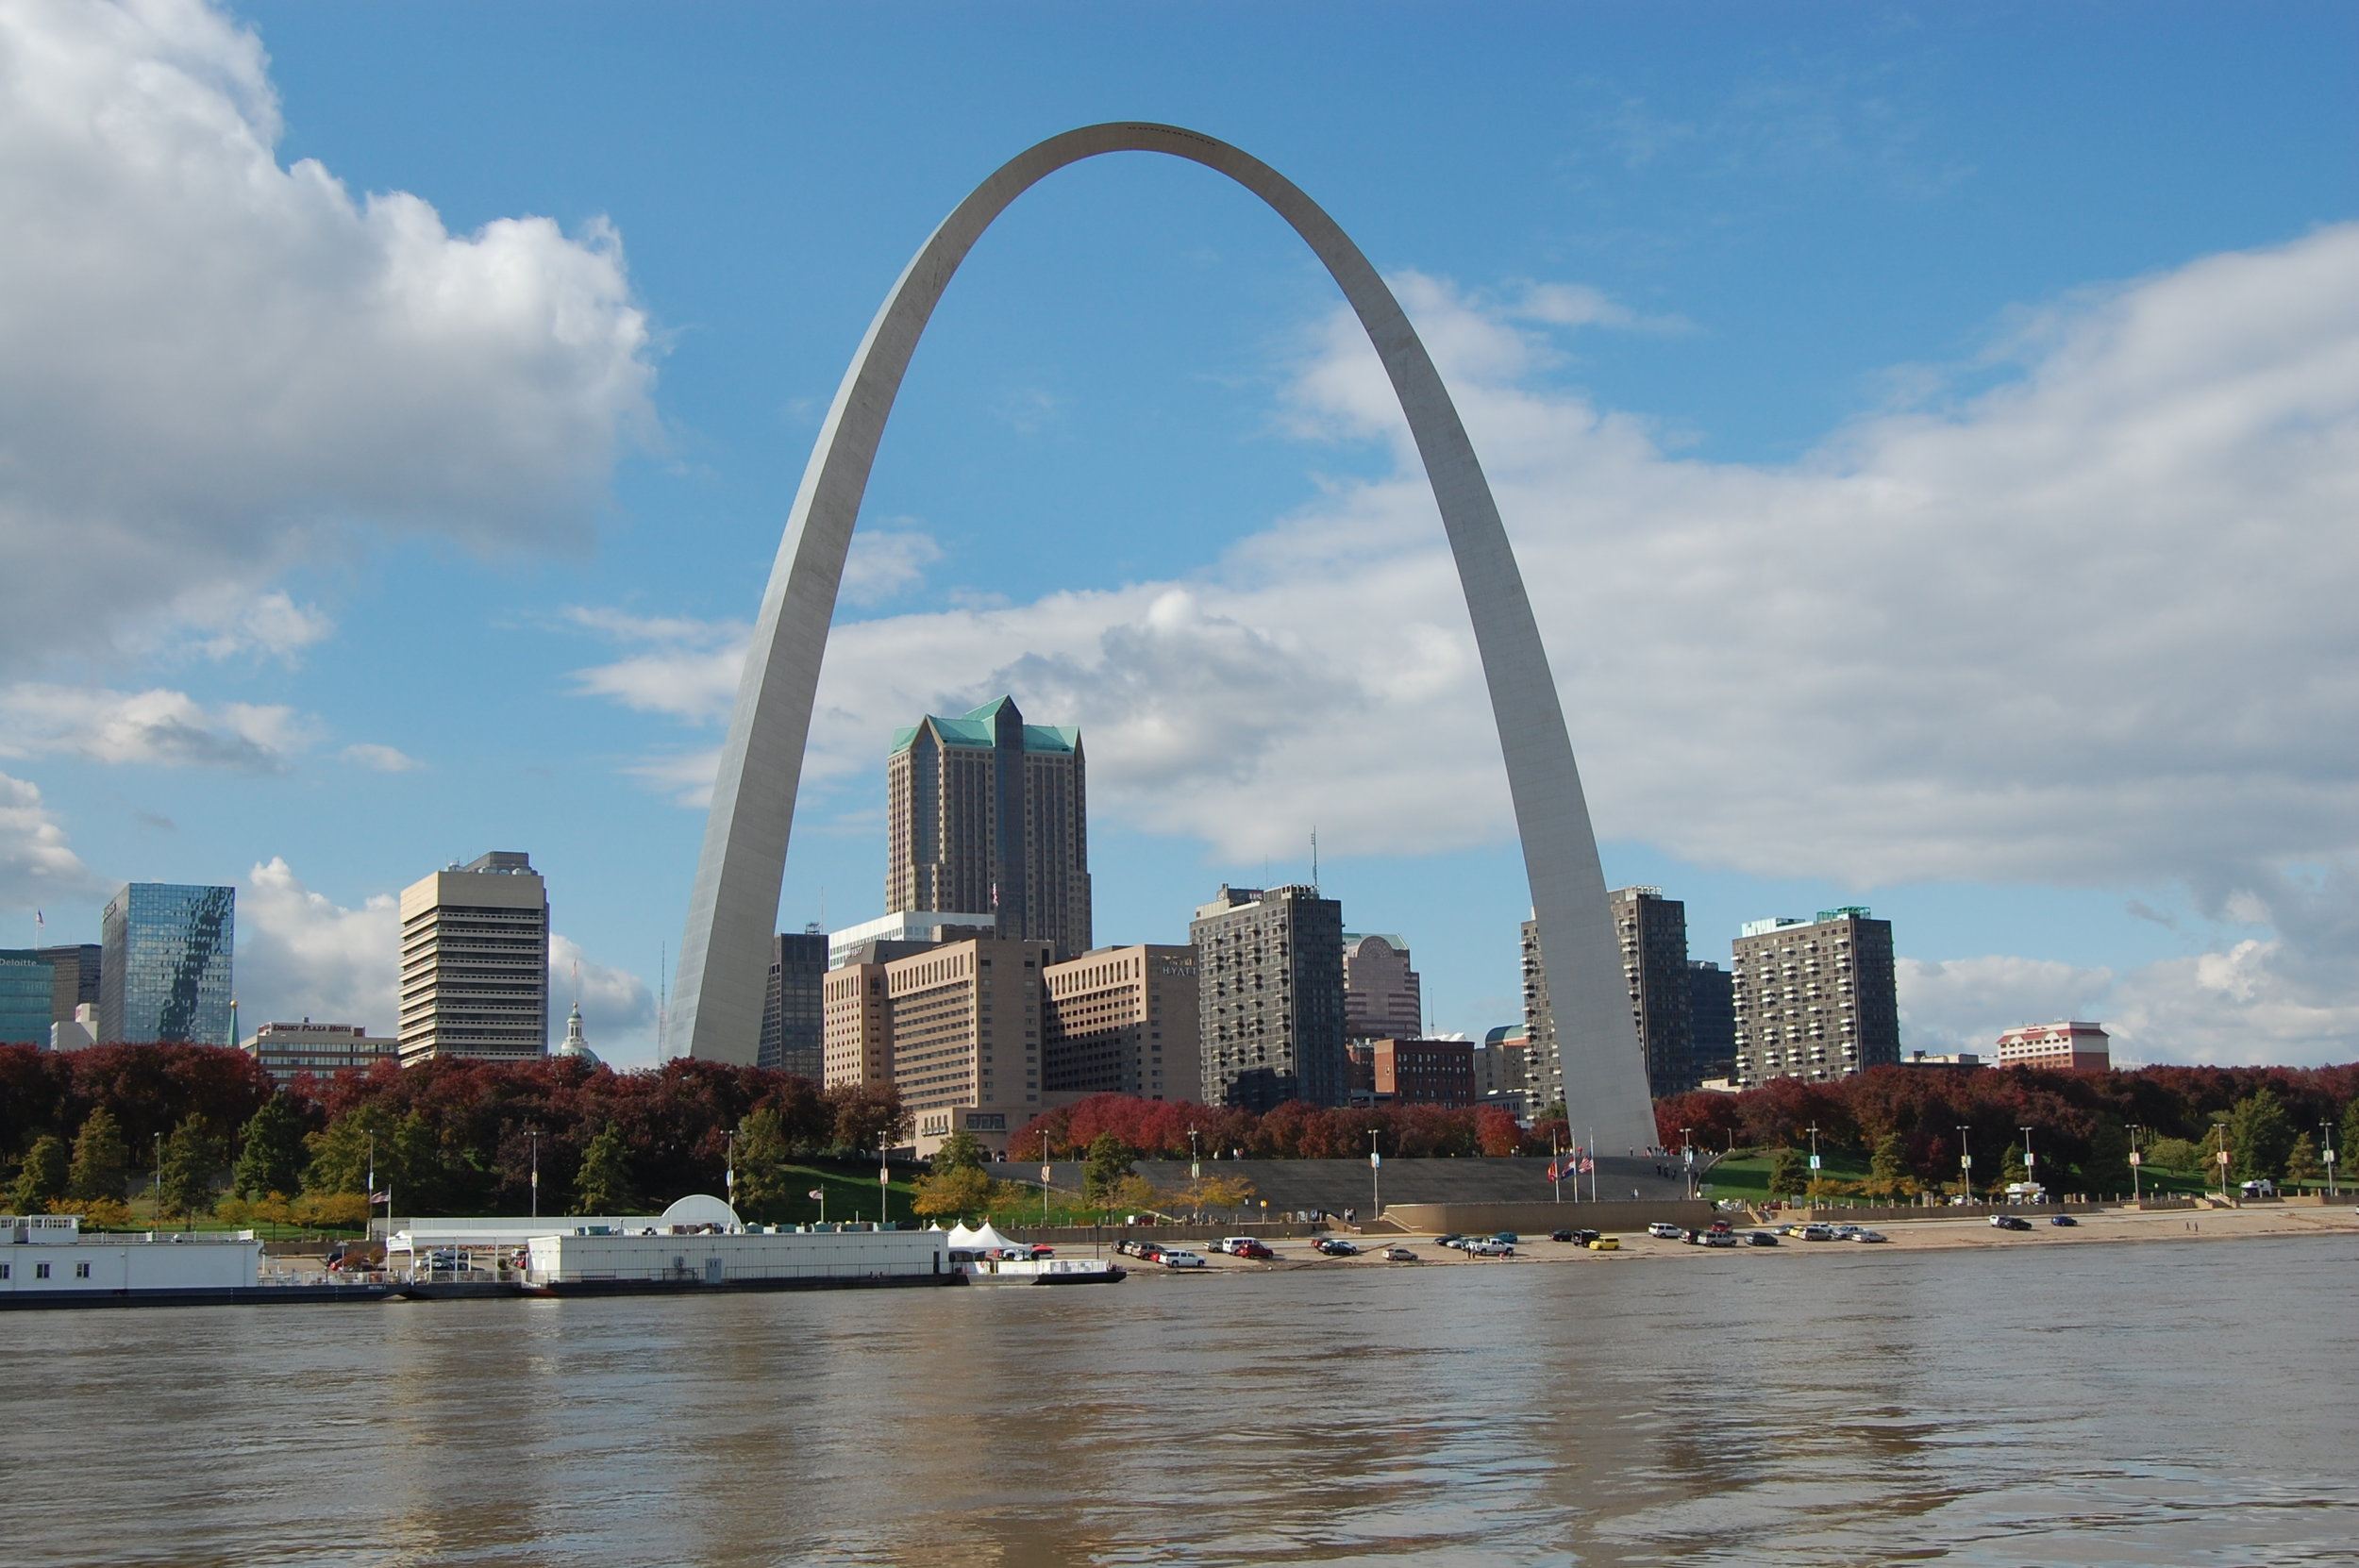 Downbound through St. Louis on the Mississippi River.